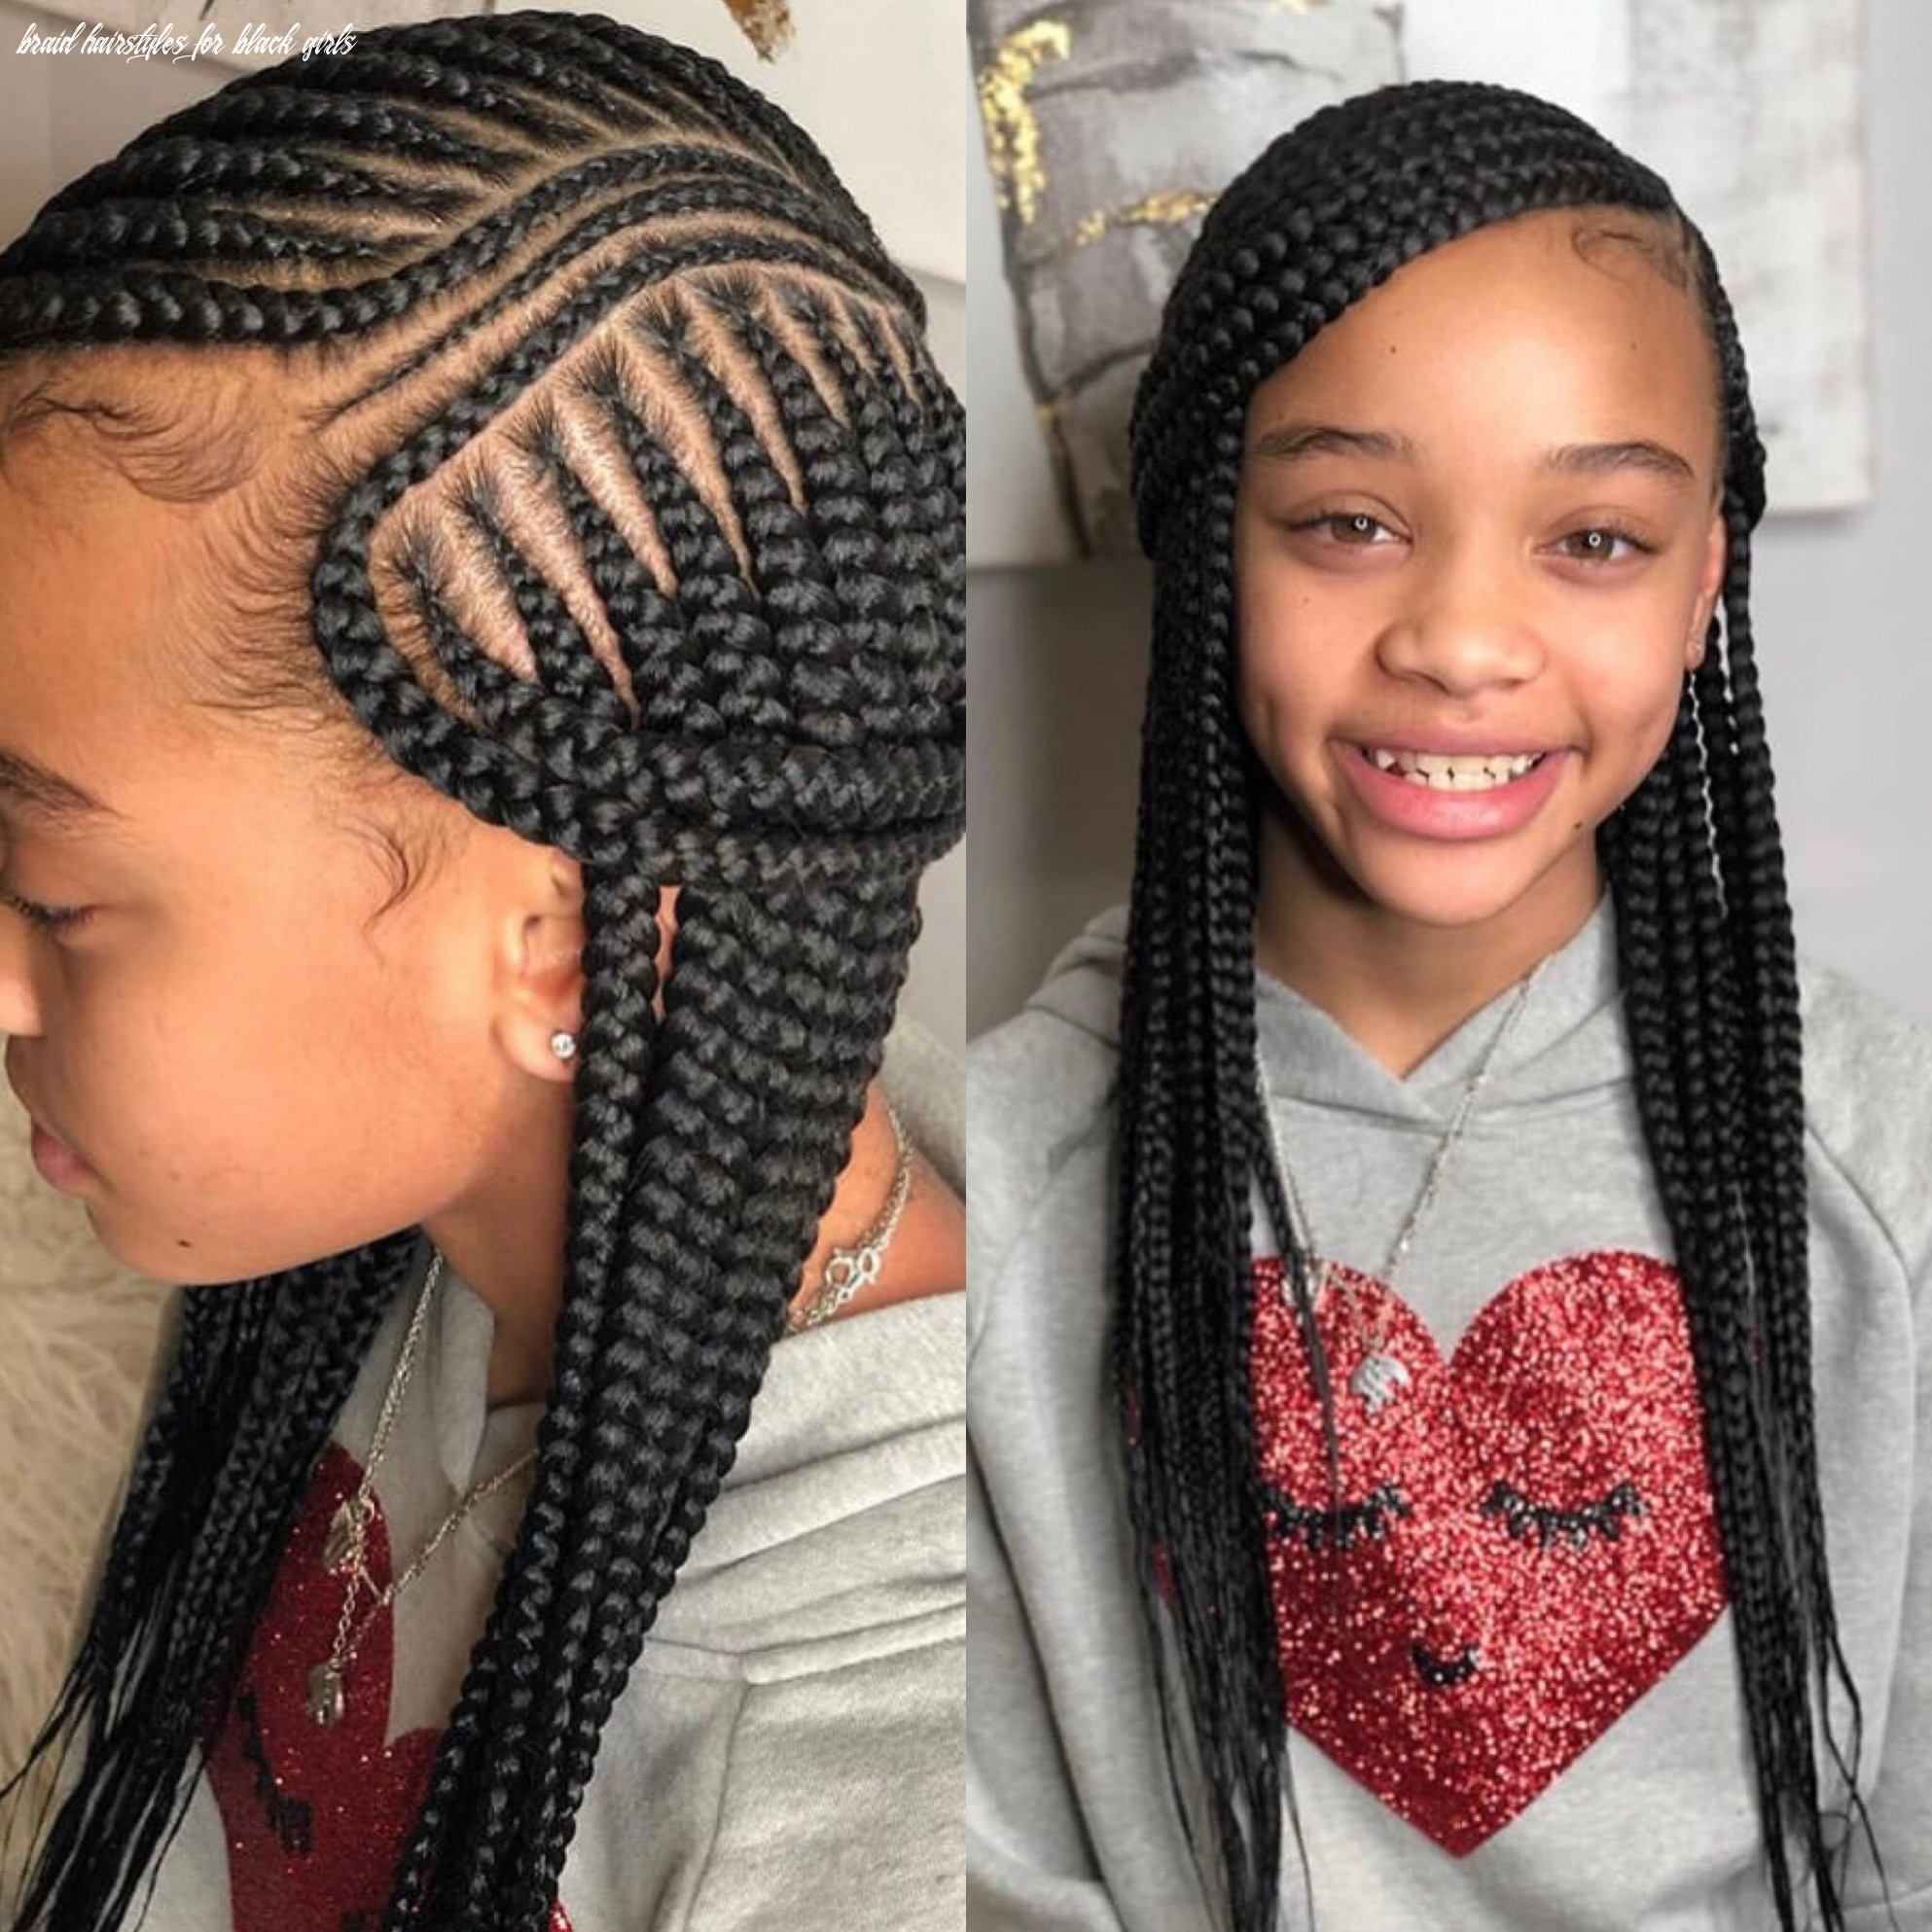 Pin by ariel robinson on braids!! (with images) | girls hairstyles